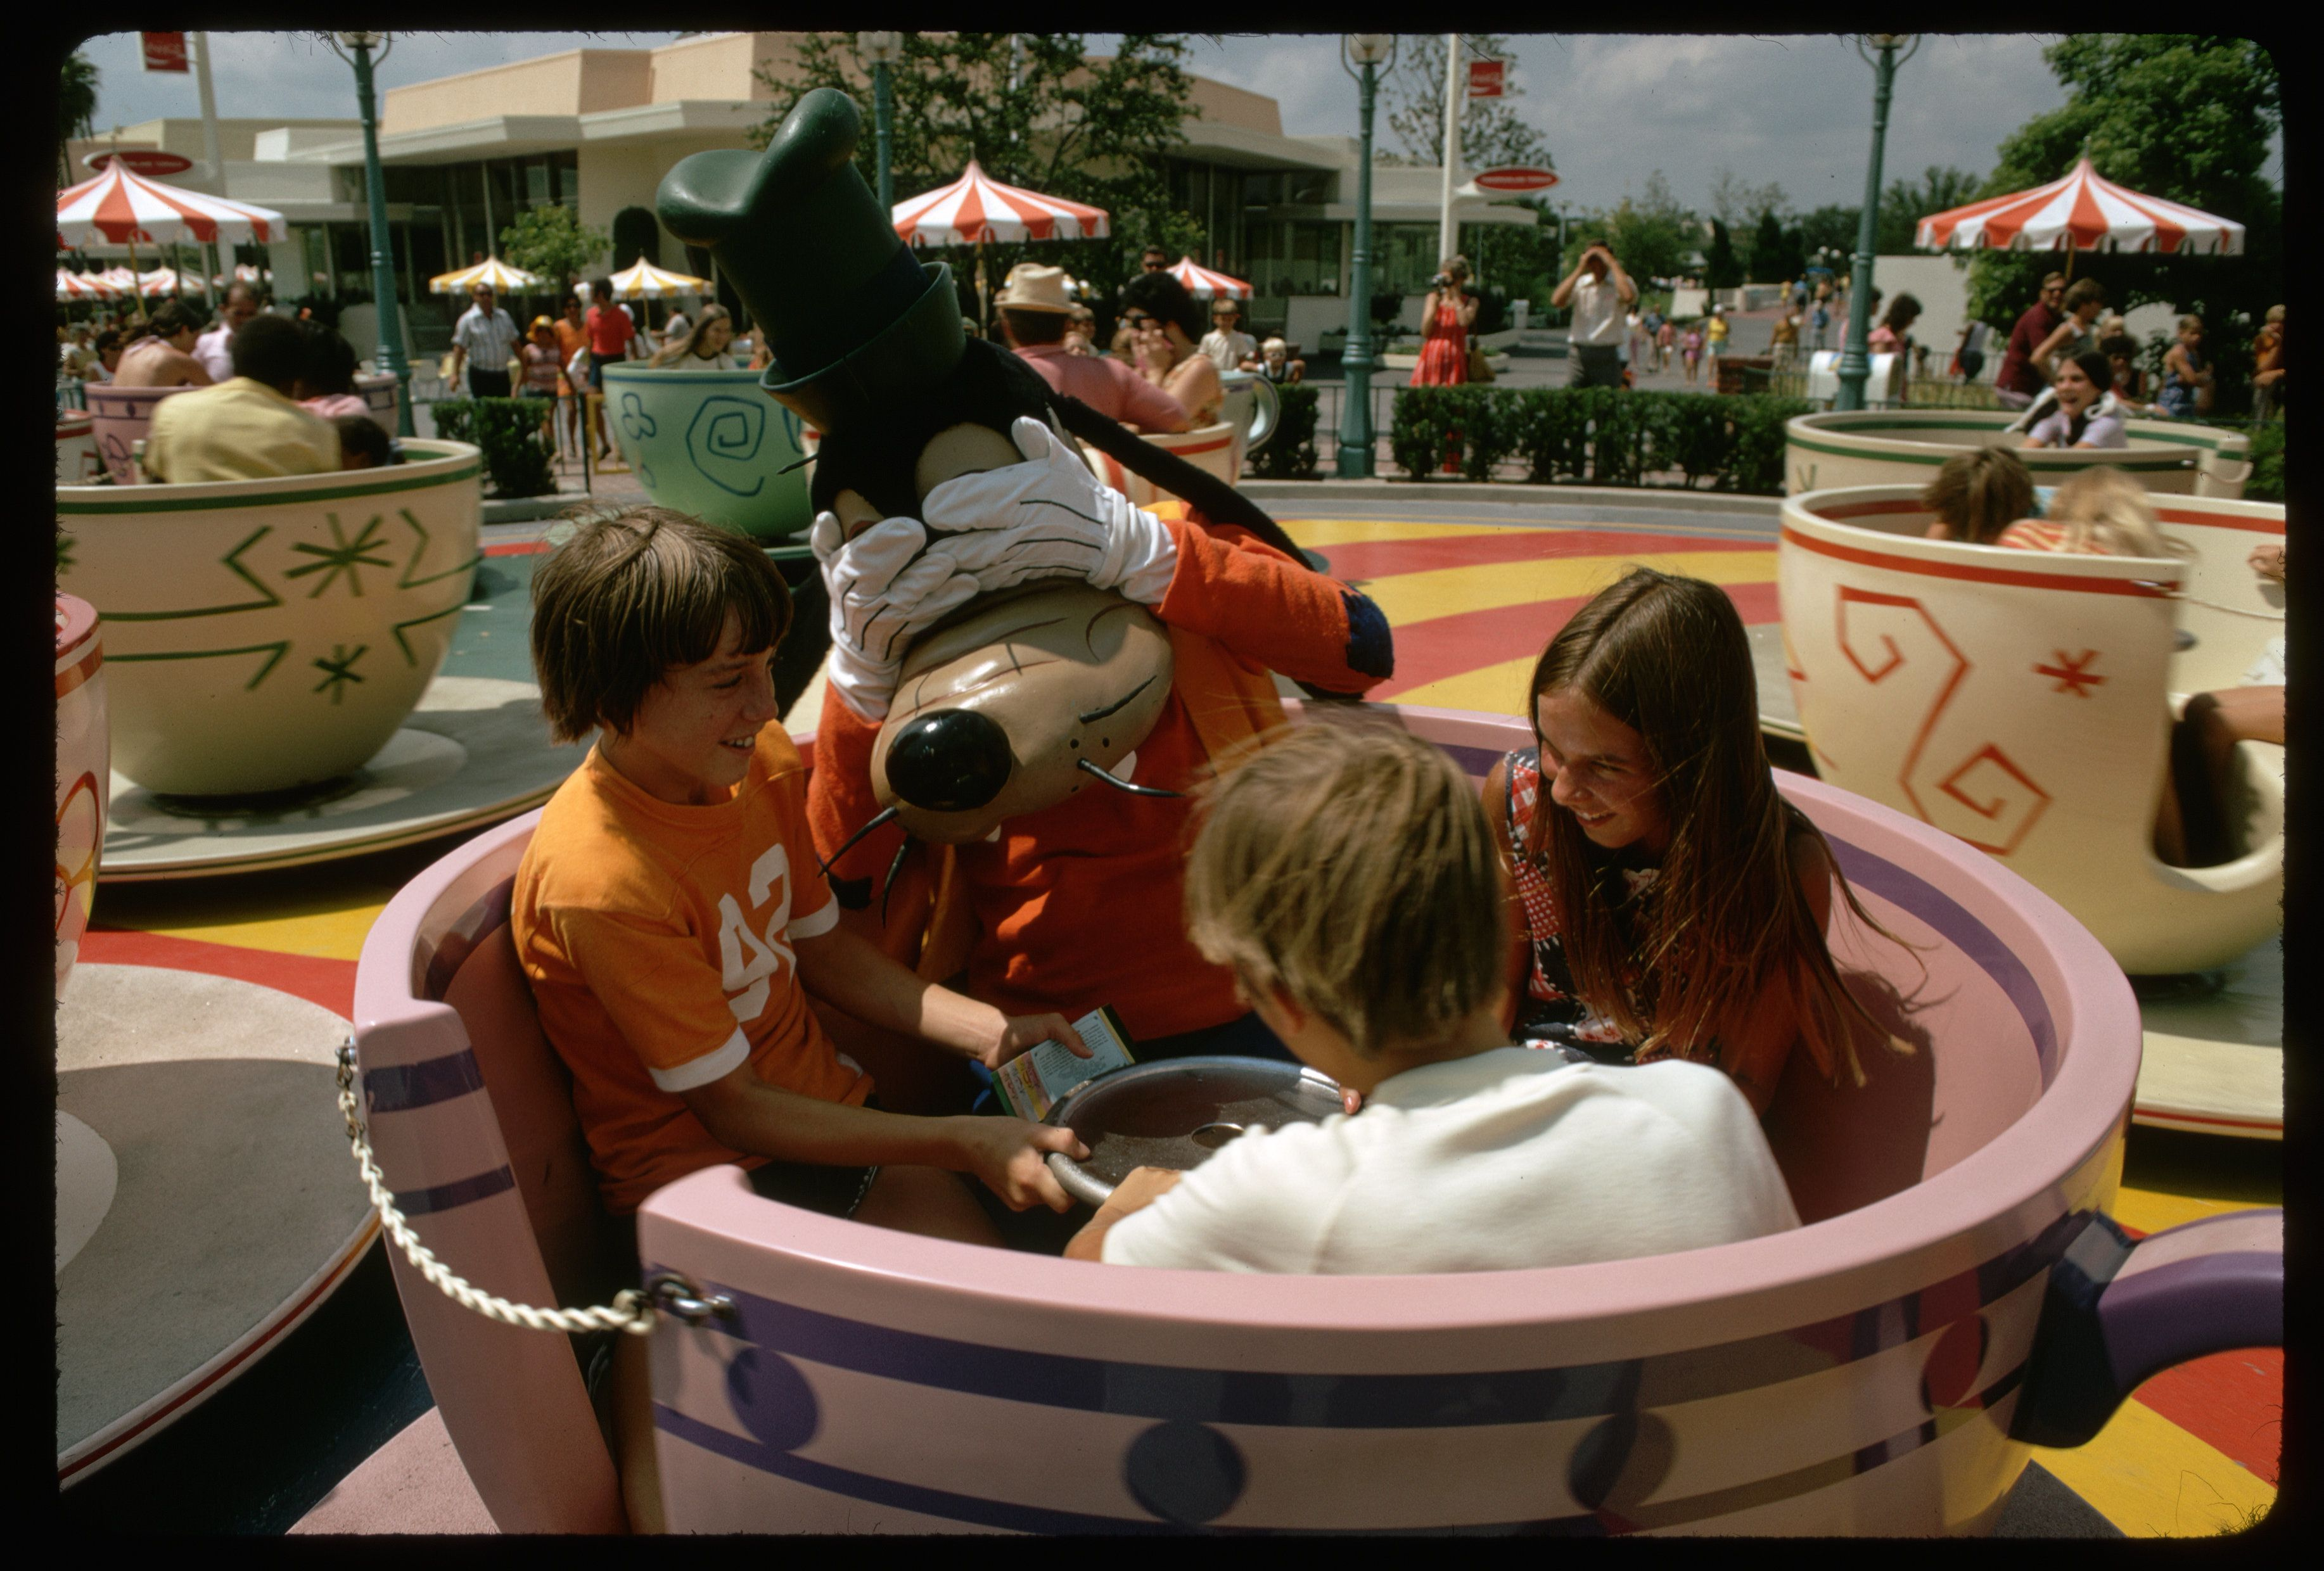 Children and Goofy on Mad Tea Party Ride (Photo by Jonathan Blair/Corbis via Getty Images)